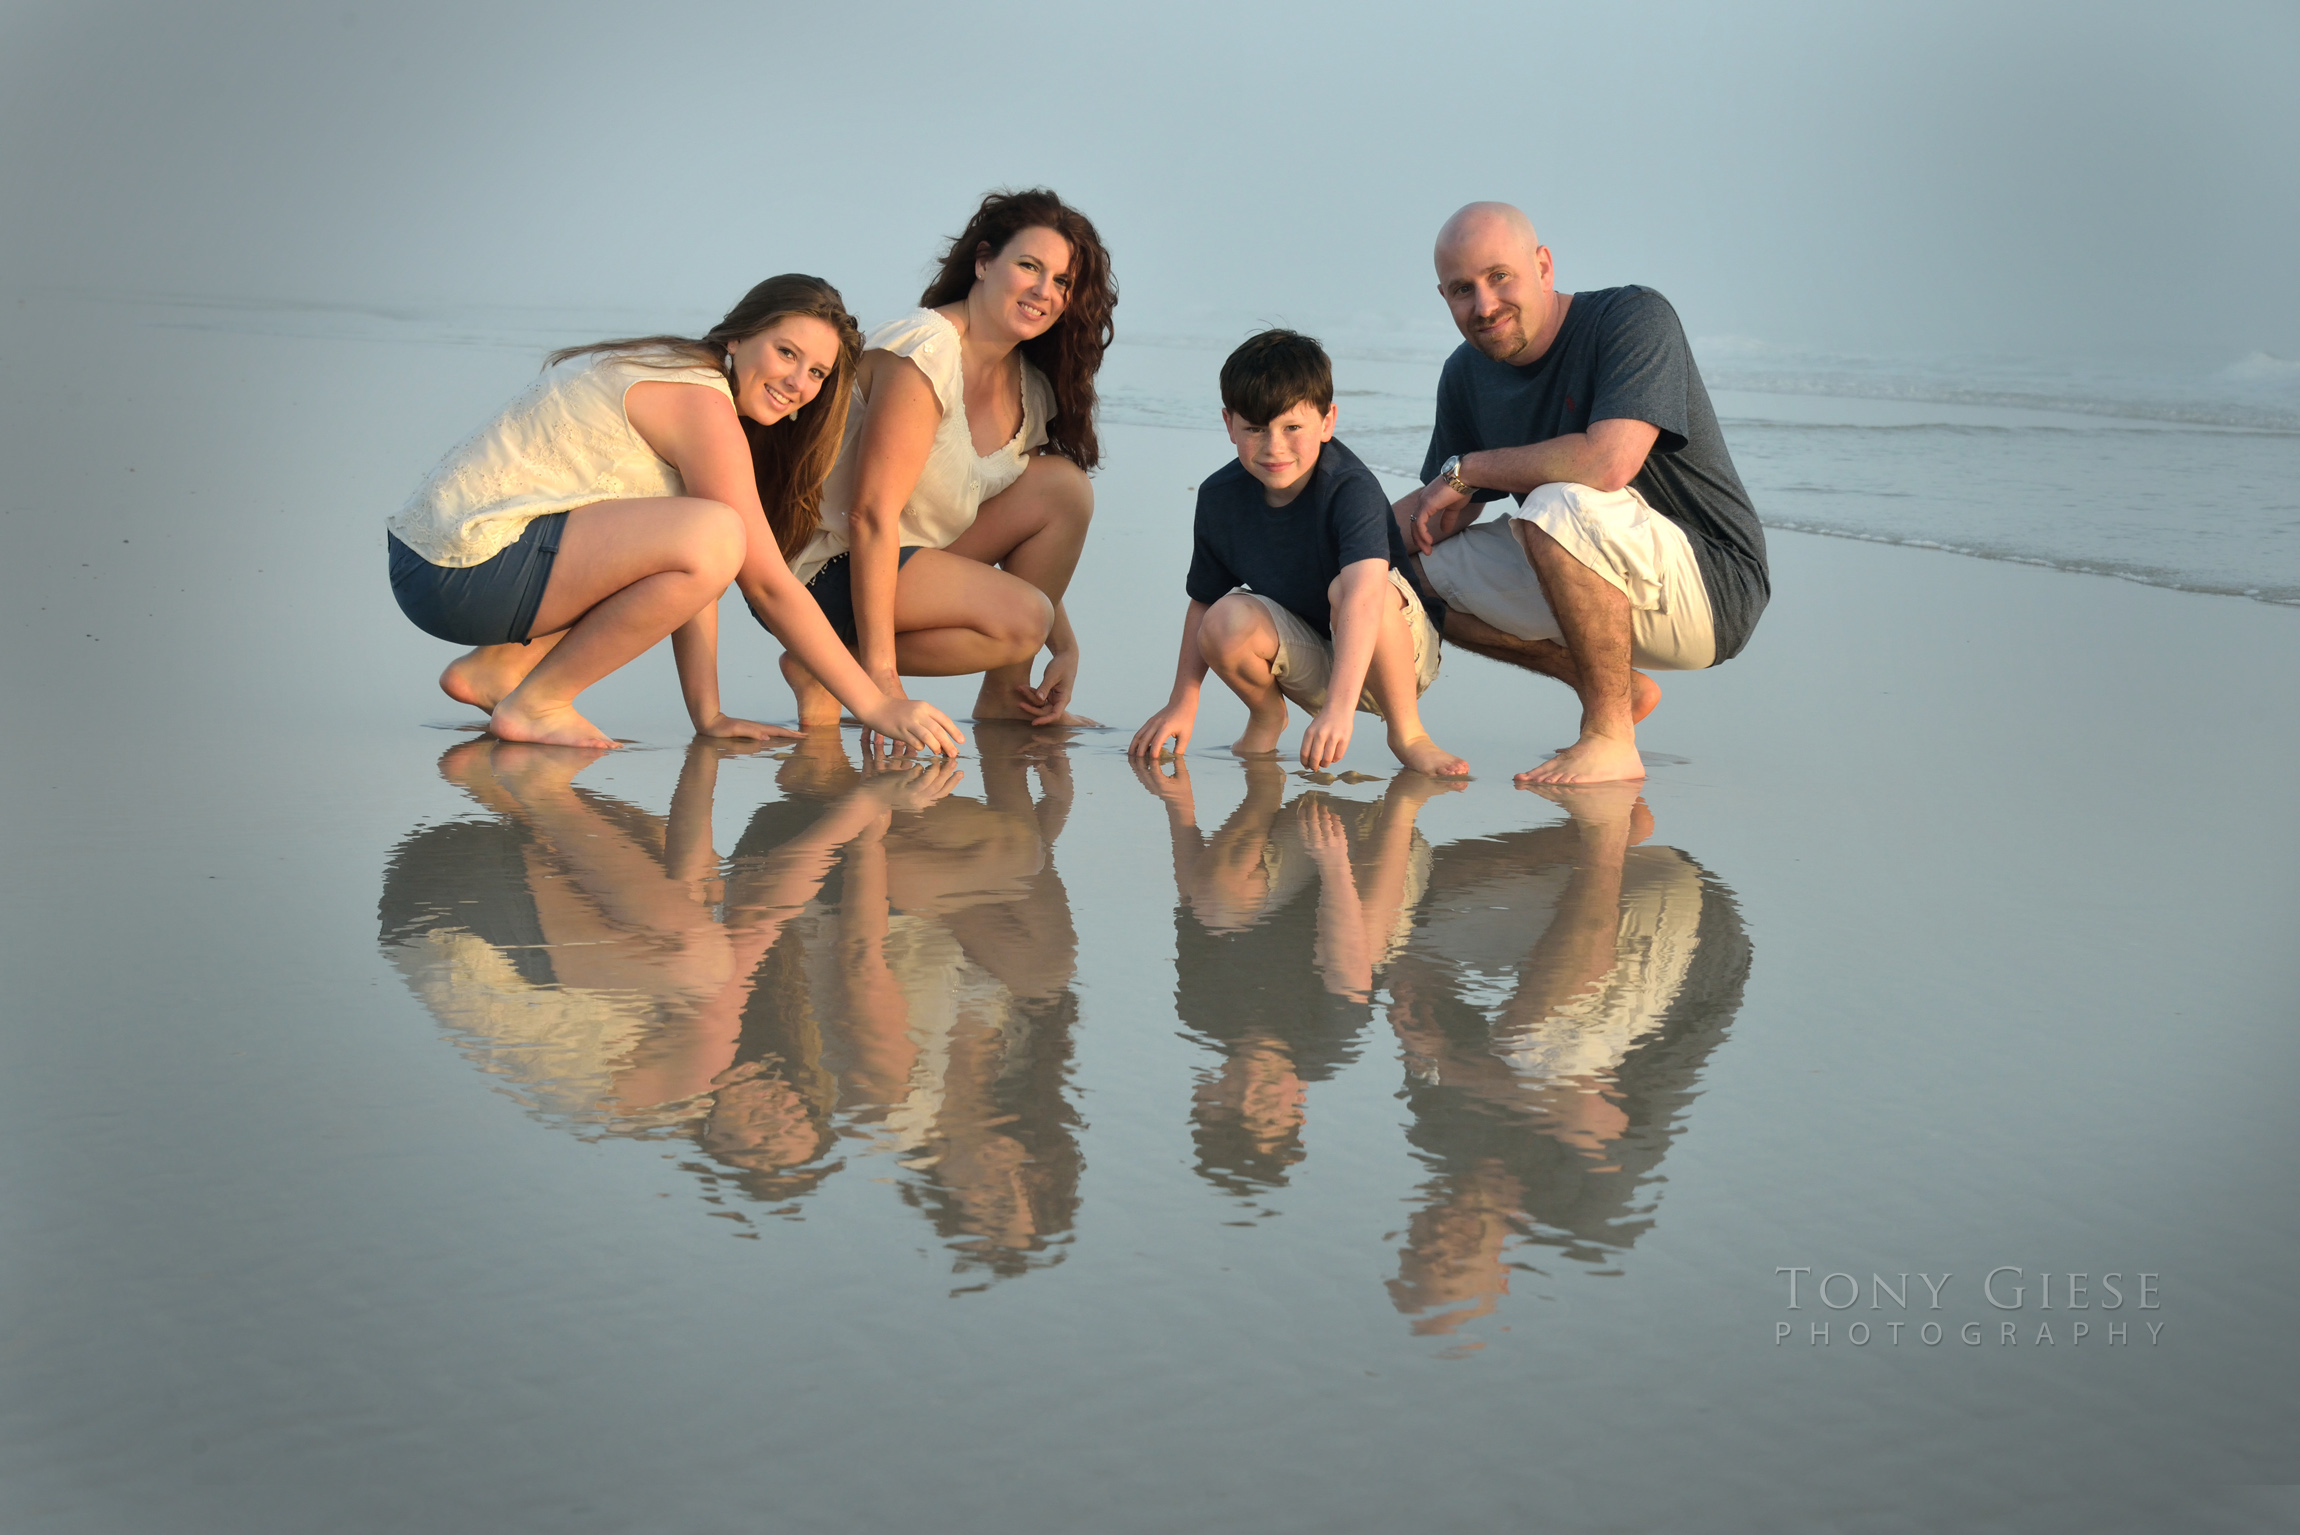 Reflection falls on the water as the tide pulls out for wonderful family portrait by Tony Giese Photography.